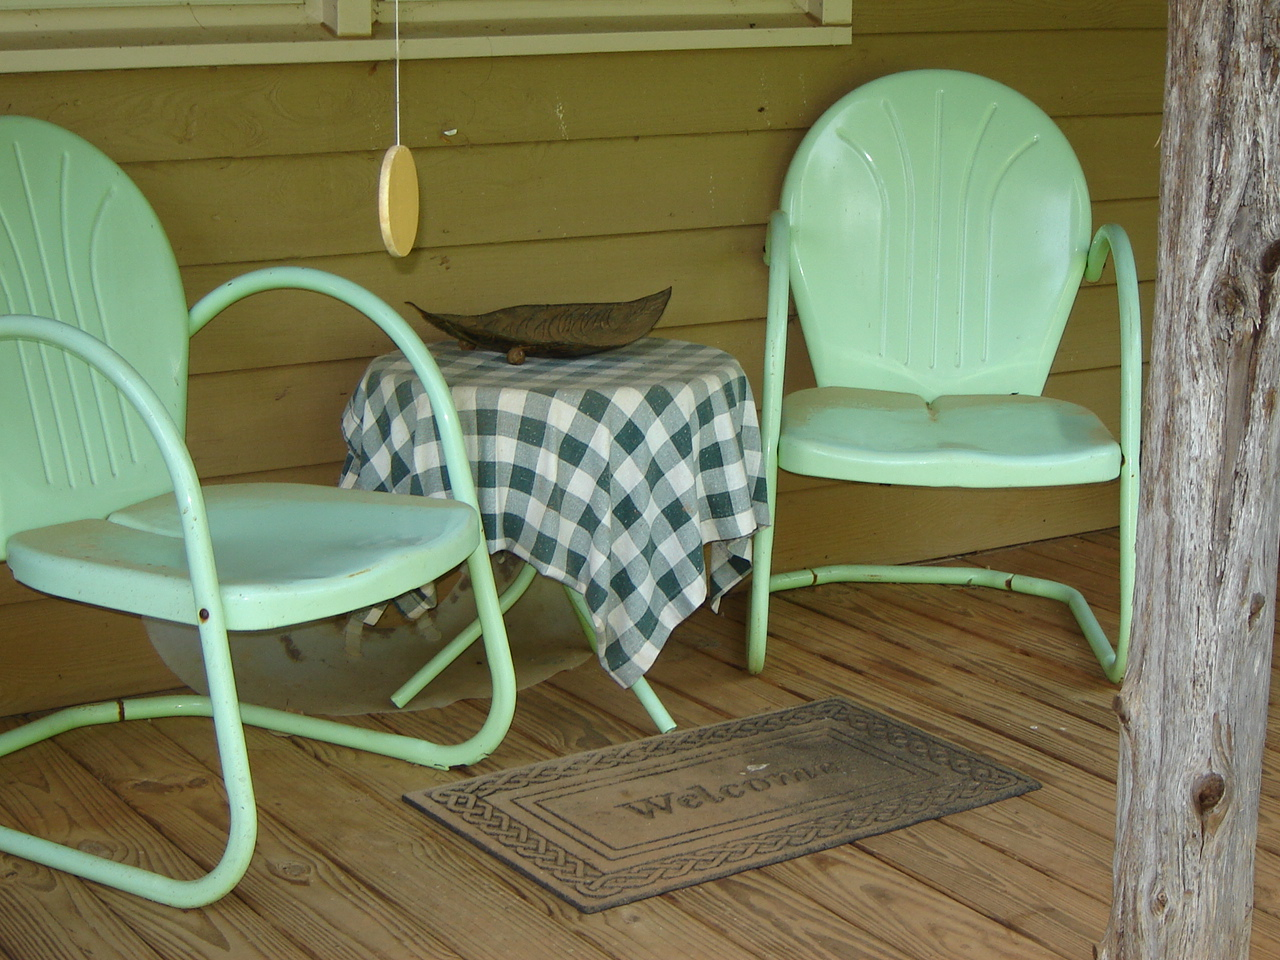 Painted ladder back chairs -  She Needs New Chairs I Have 4 Brightly Painted Ladder Back Chairs Just Waiting For Her But Until Then Her Chairs Remain The Most Inviting Of All